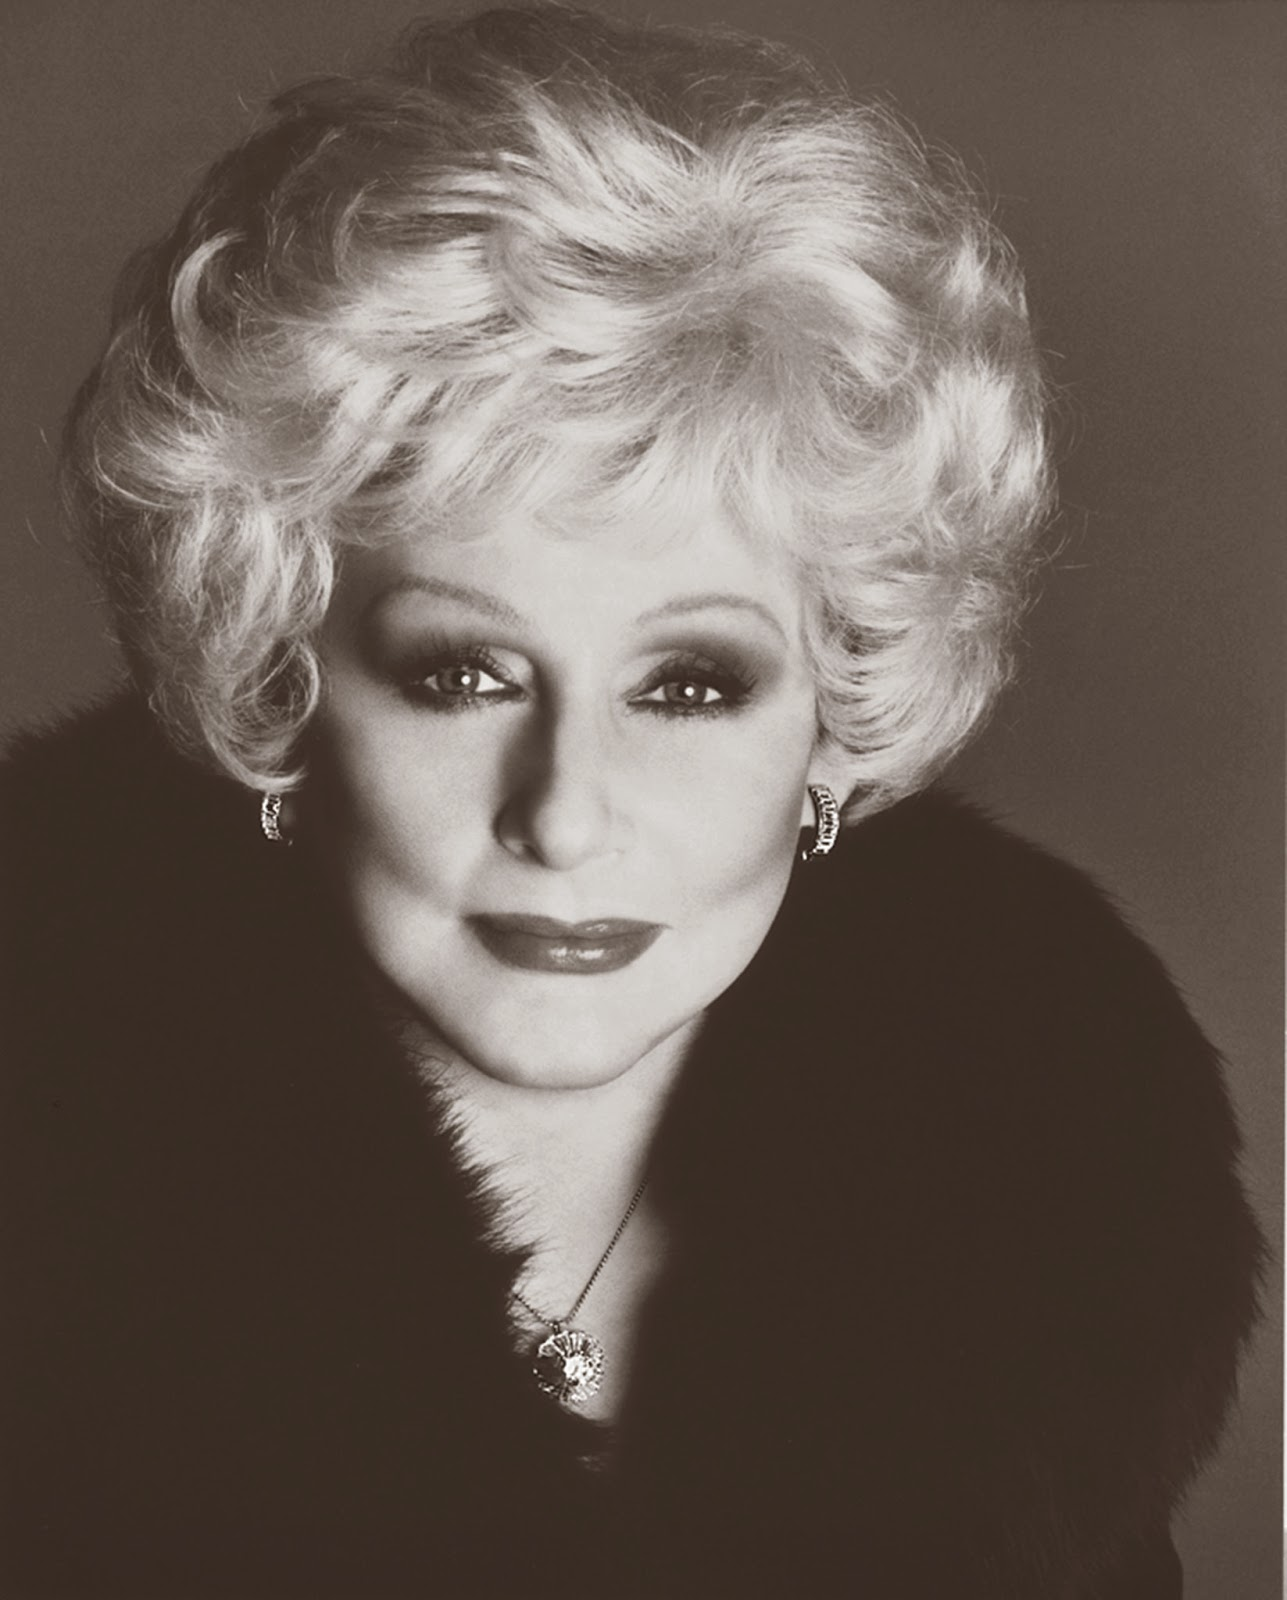 mary kay ash Mary kay ash was a famous american businesswoman and the founder of mary kay cosmetics, inc her strategy of the business was based on christian philosophy she asked her employees to give preference, first to god, then family and finally to work.